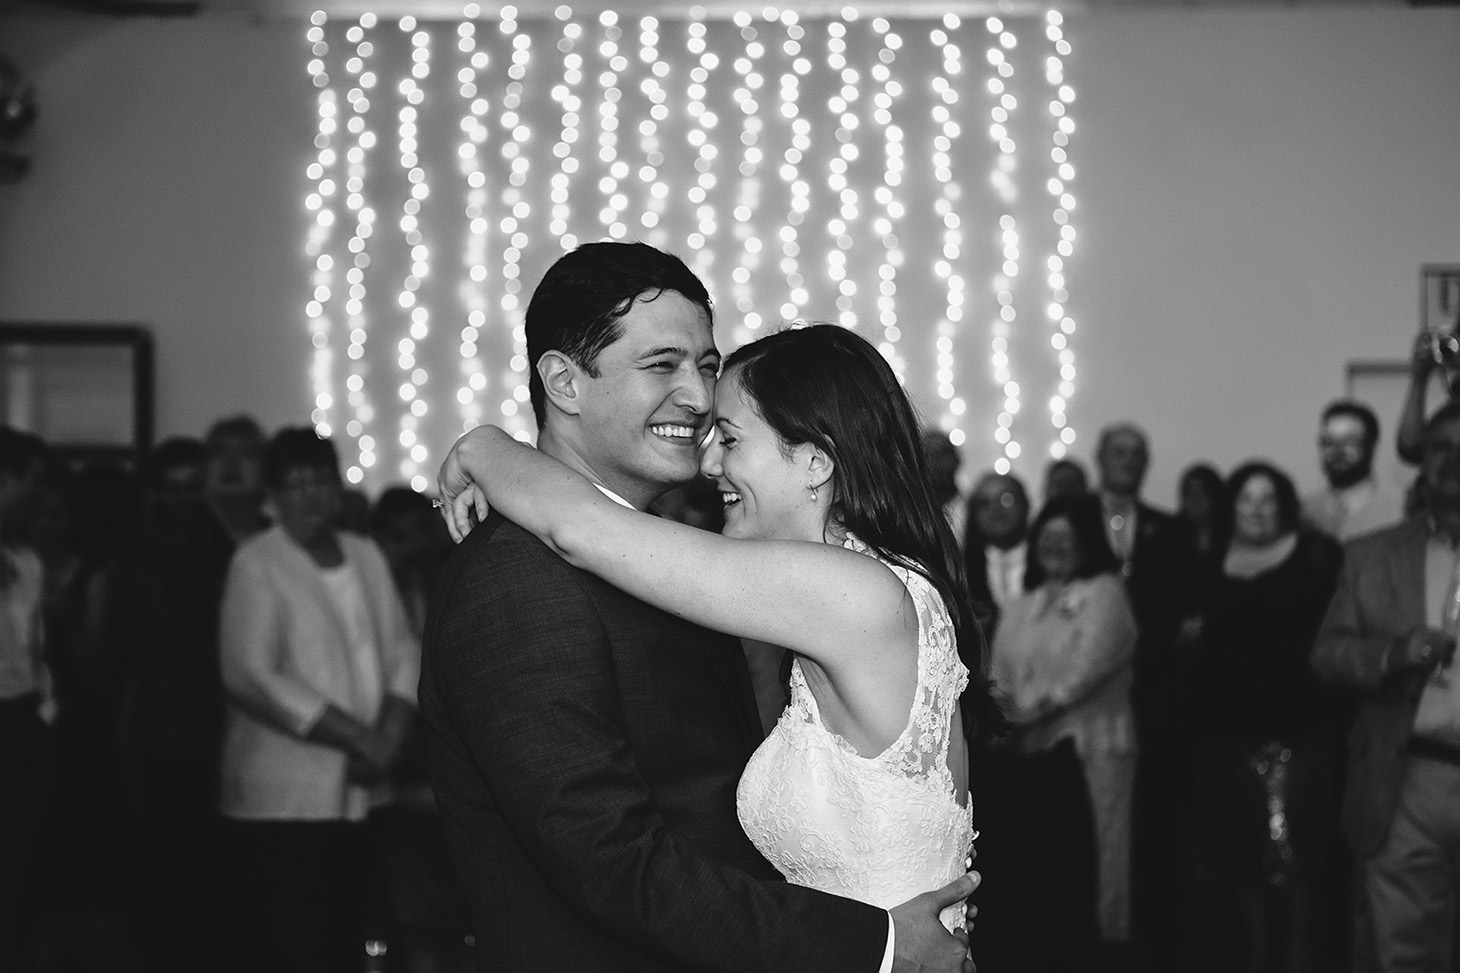 Megan-Newton-Photography-Best-Wedding-Photos-2015-006